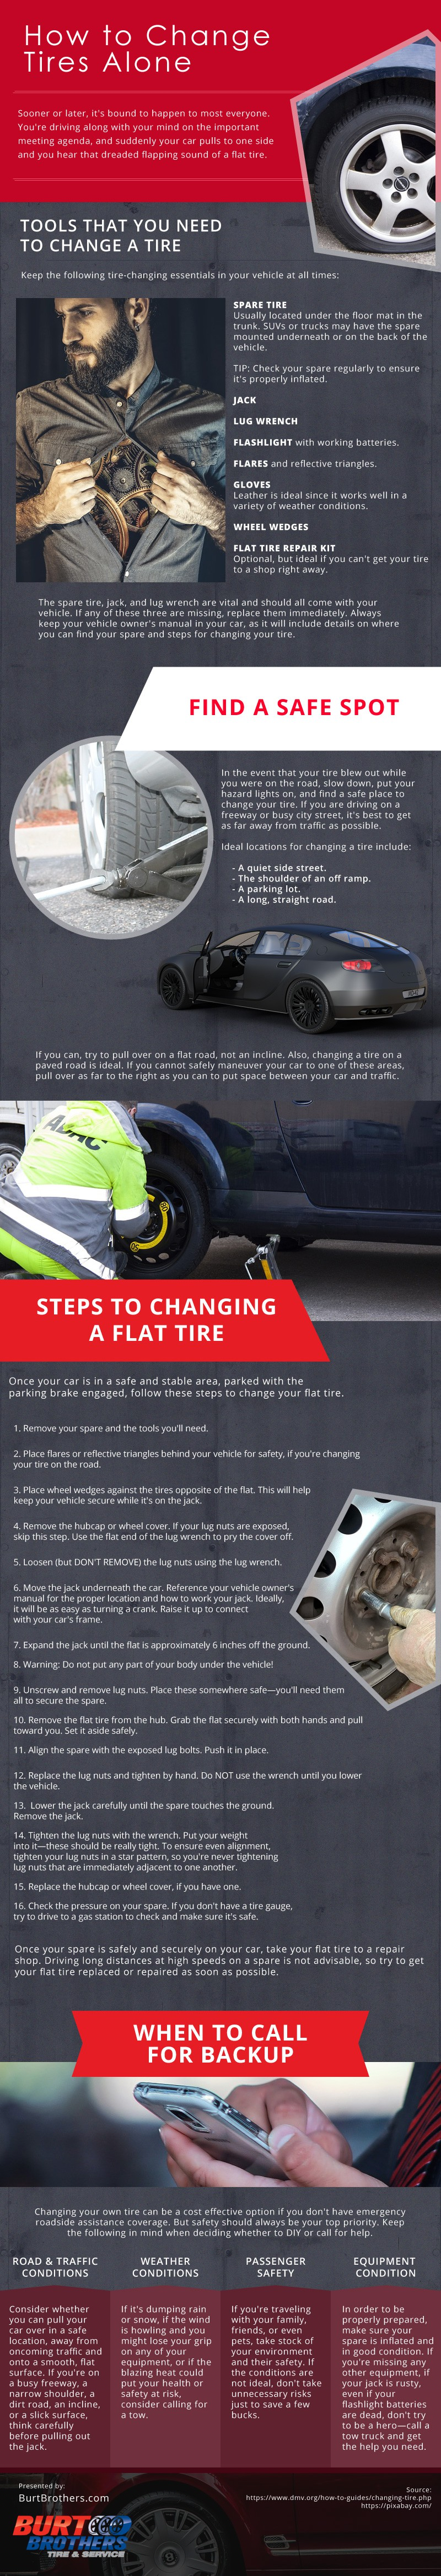 How to Change Tires Alone [infographic]